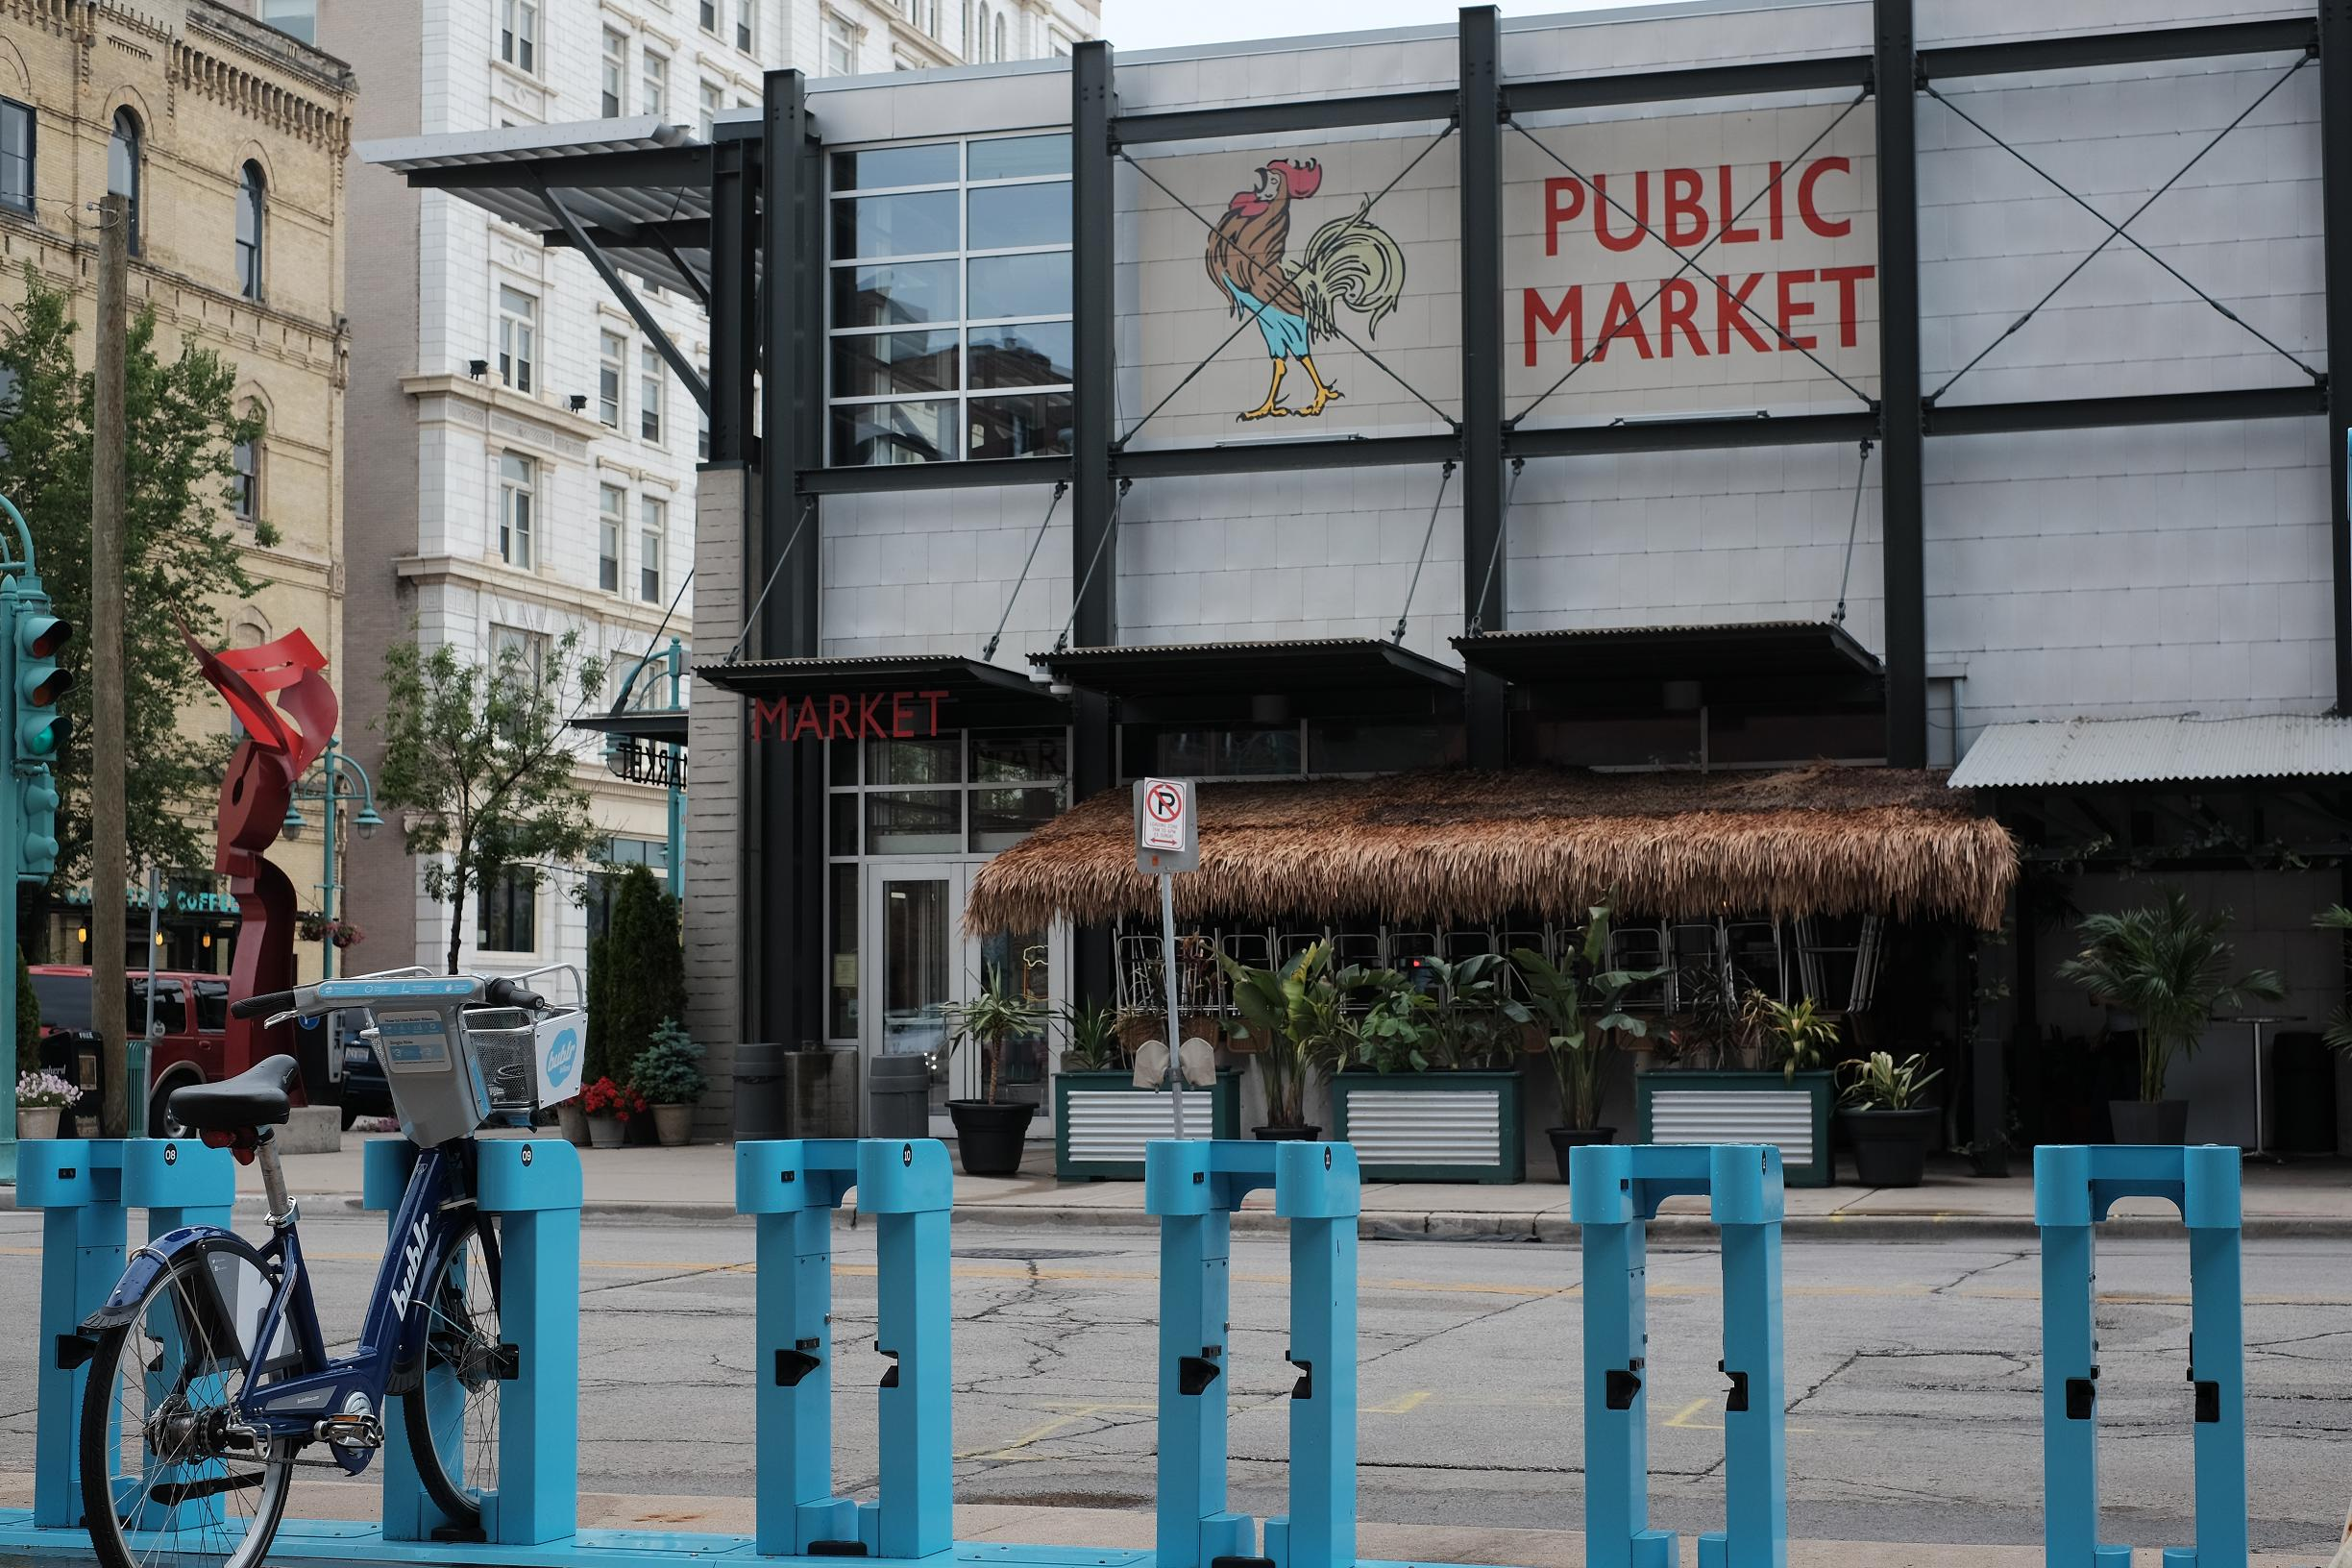 Bublr Bikes at the Public Market